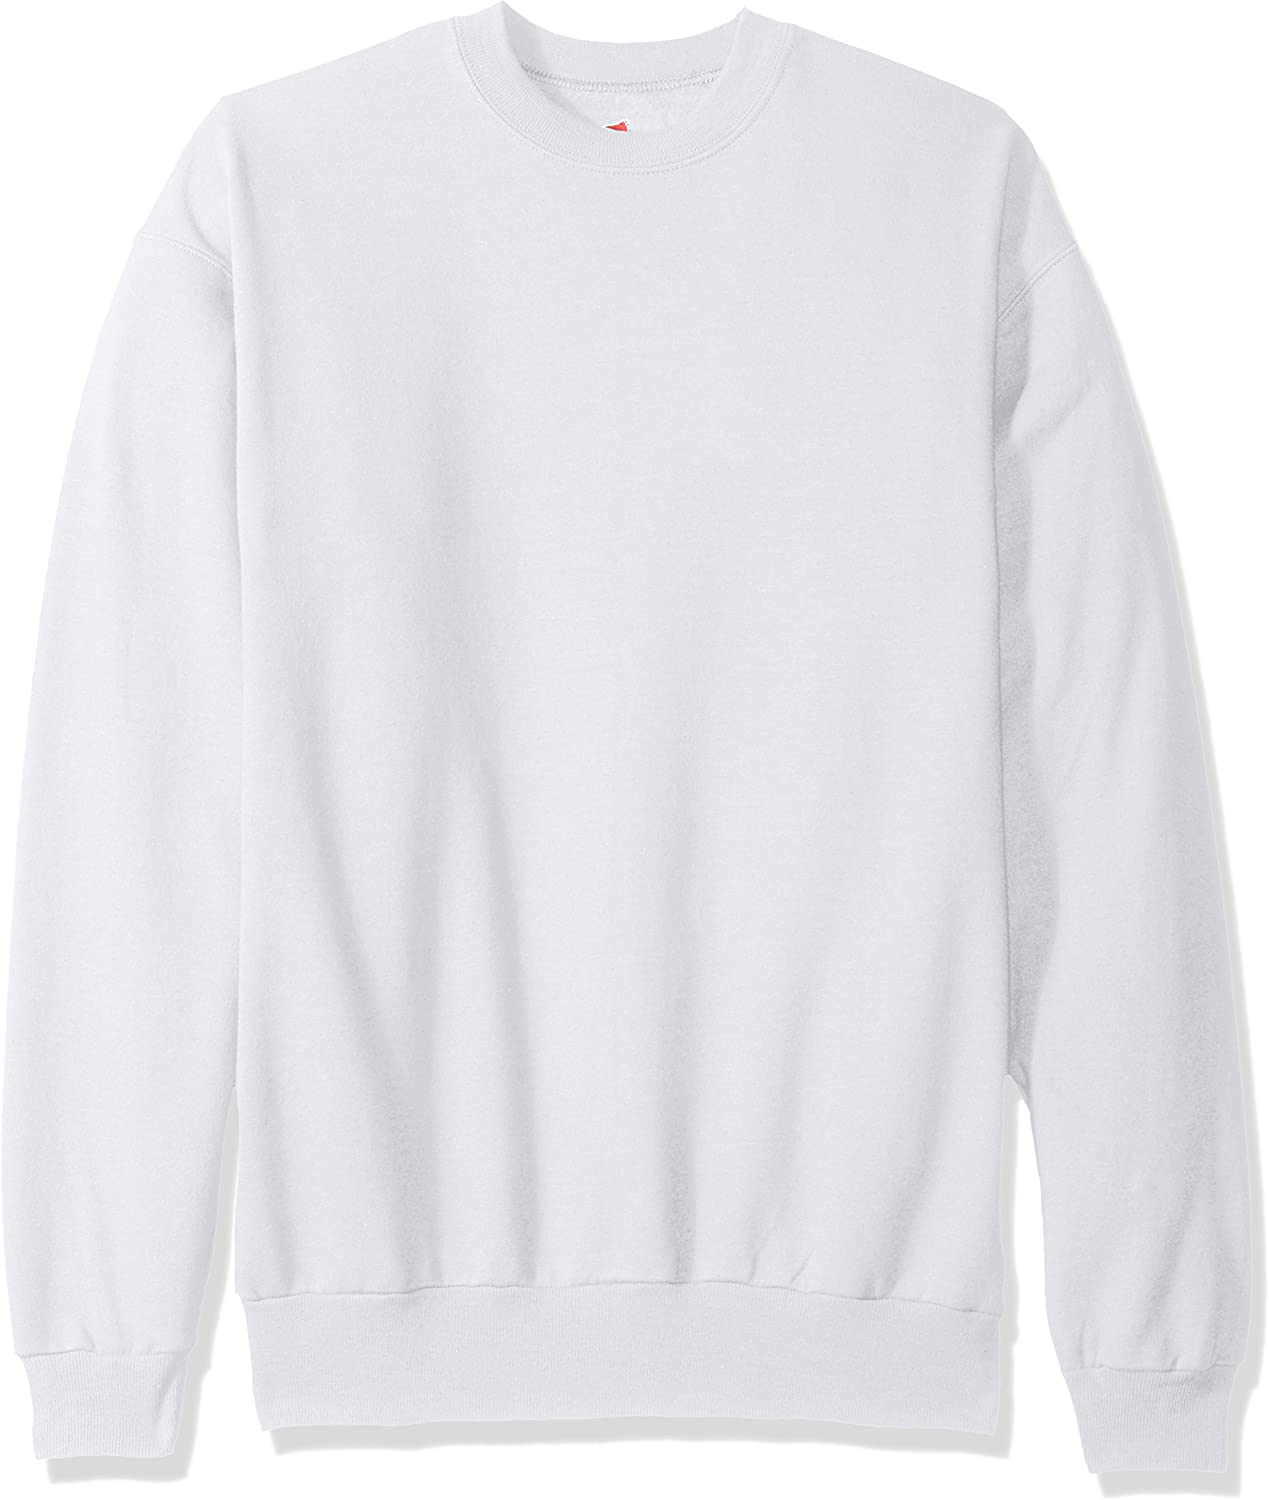 Hanes Men's Ecosmart Fleece Sweatshirt at  Men's Clothing store